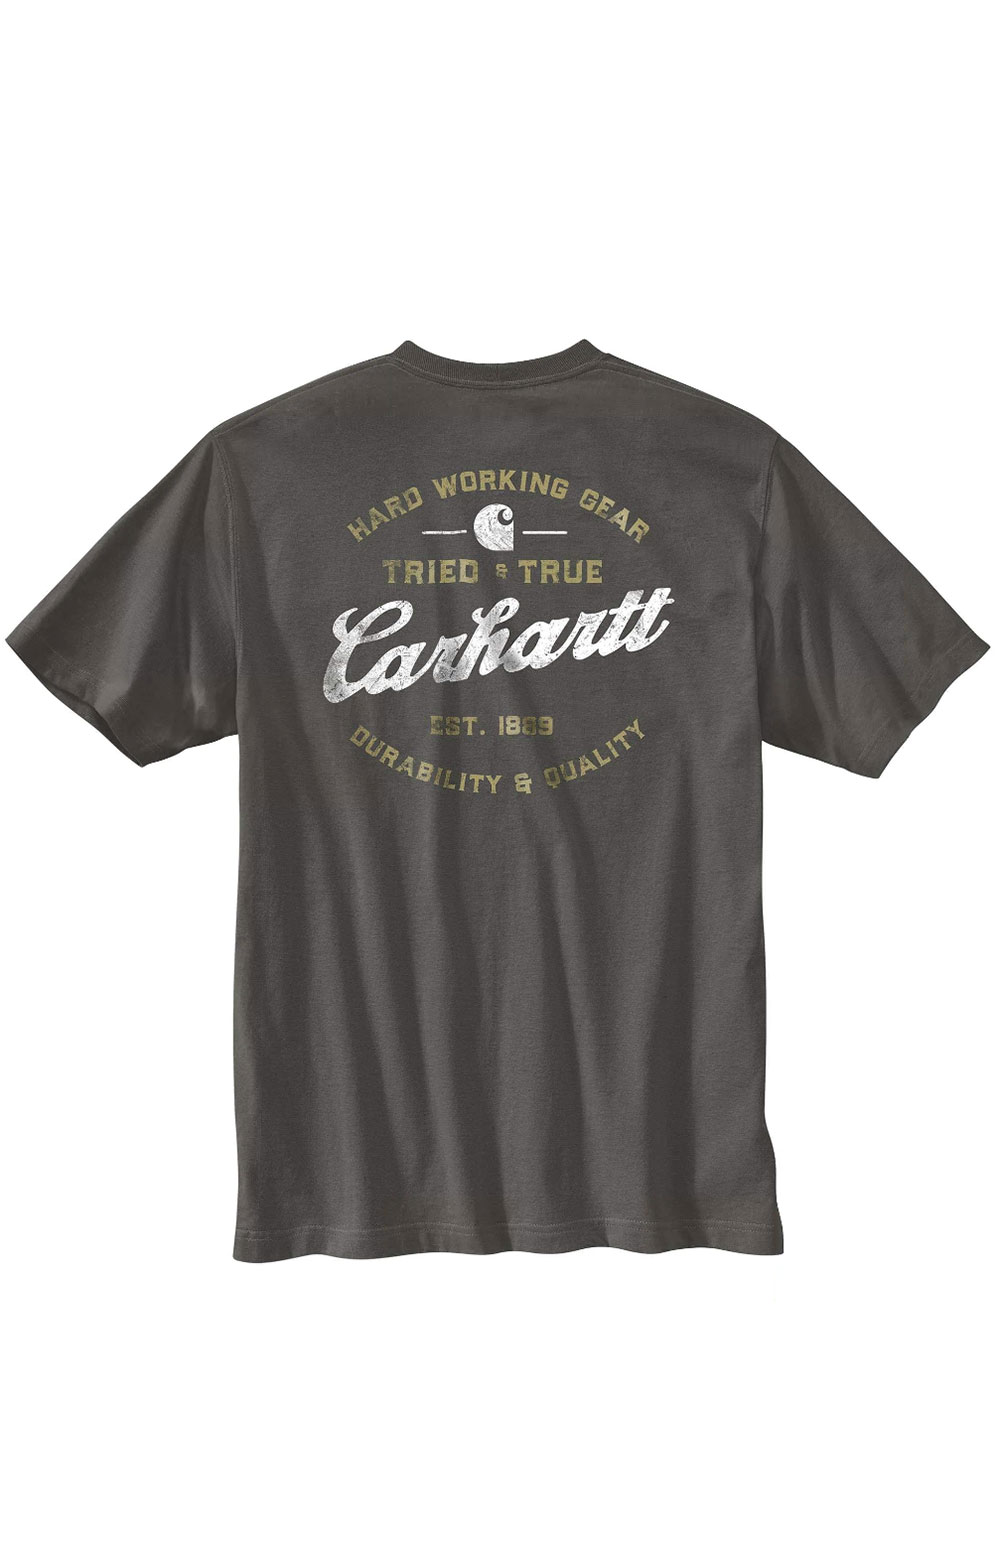 (104612) Relaxed Fit HW S/S Pocket Tried And True Graphic T-Shirt - Peat